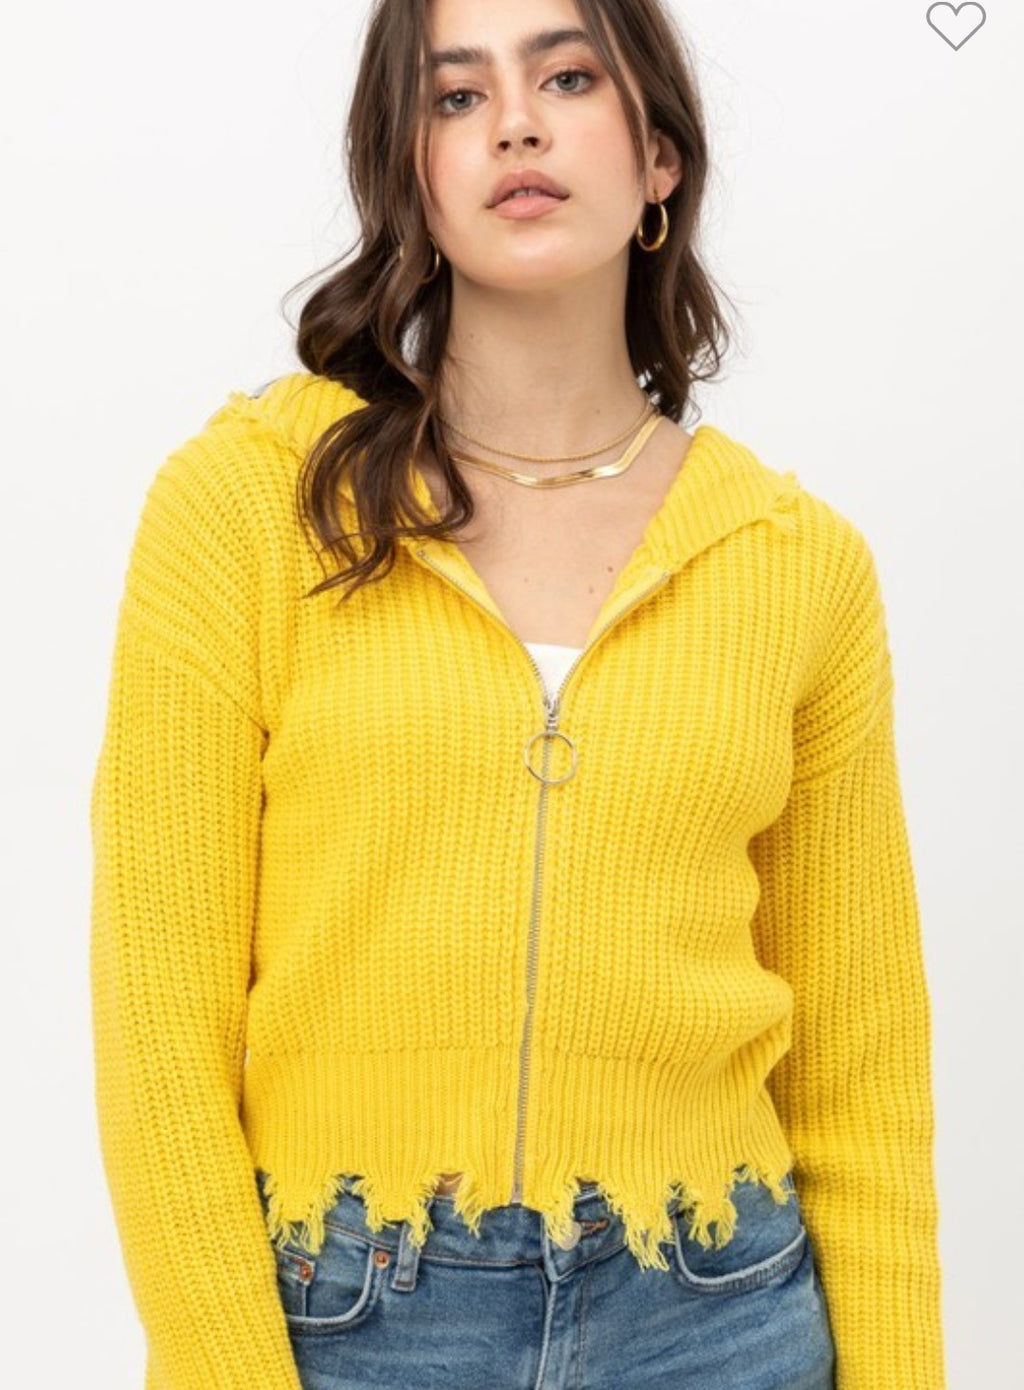 Spring 21 Distressed Zip Up Yellow Sweater